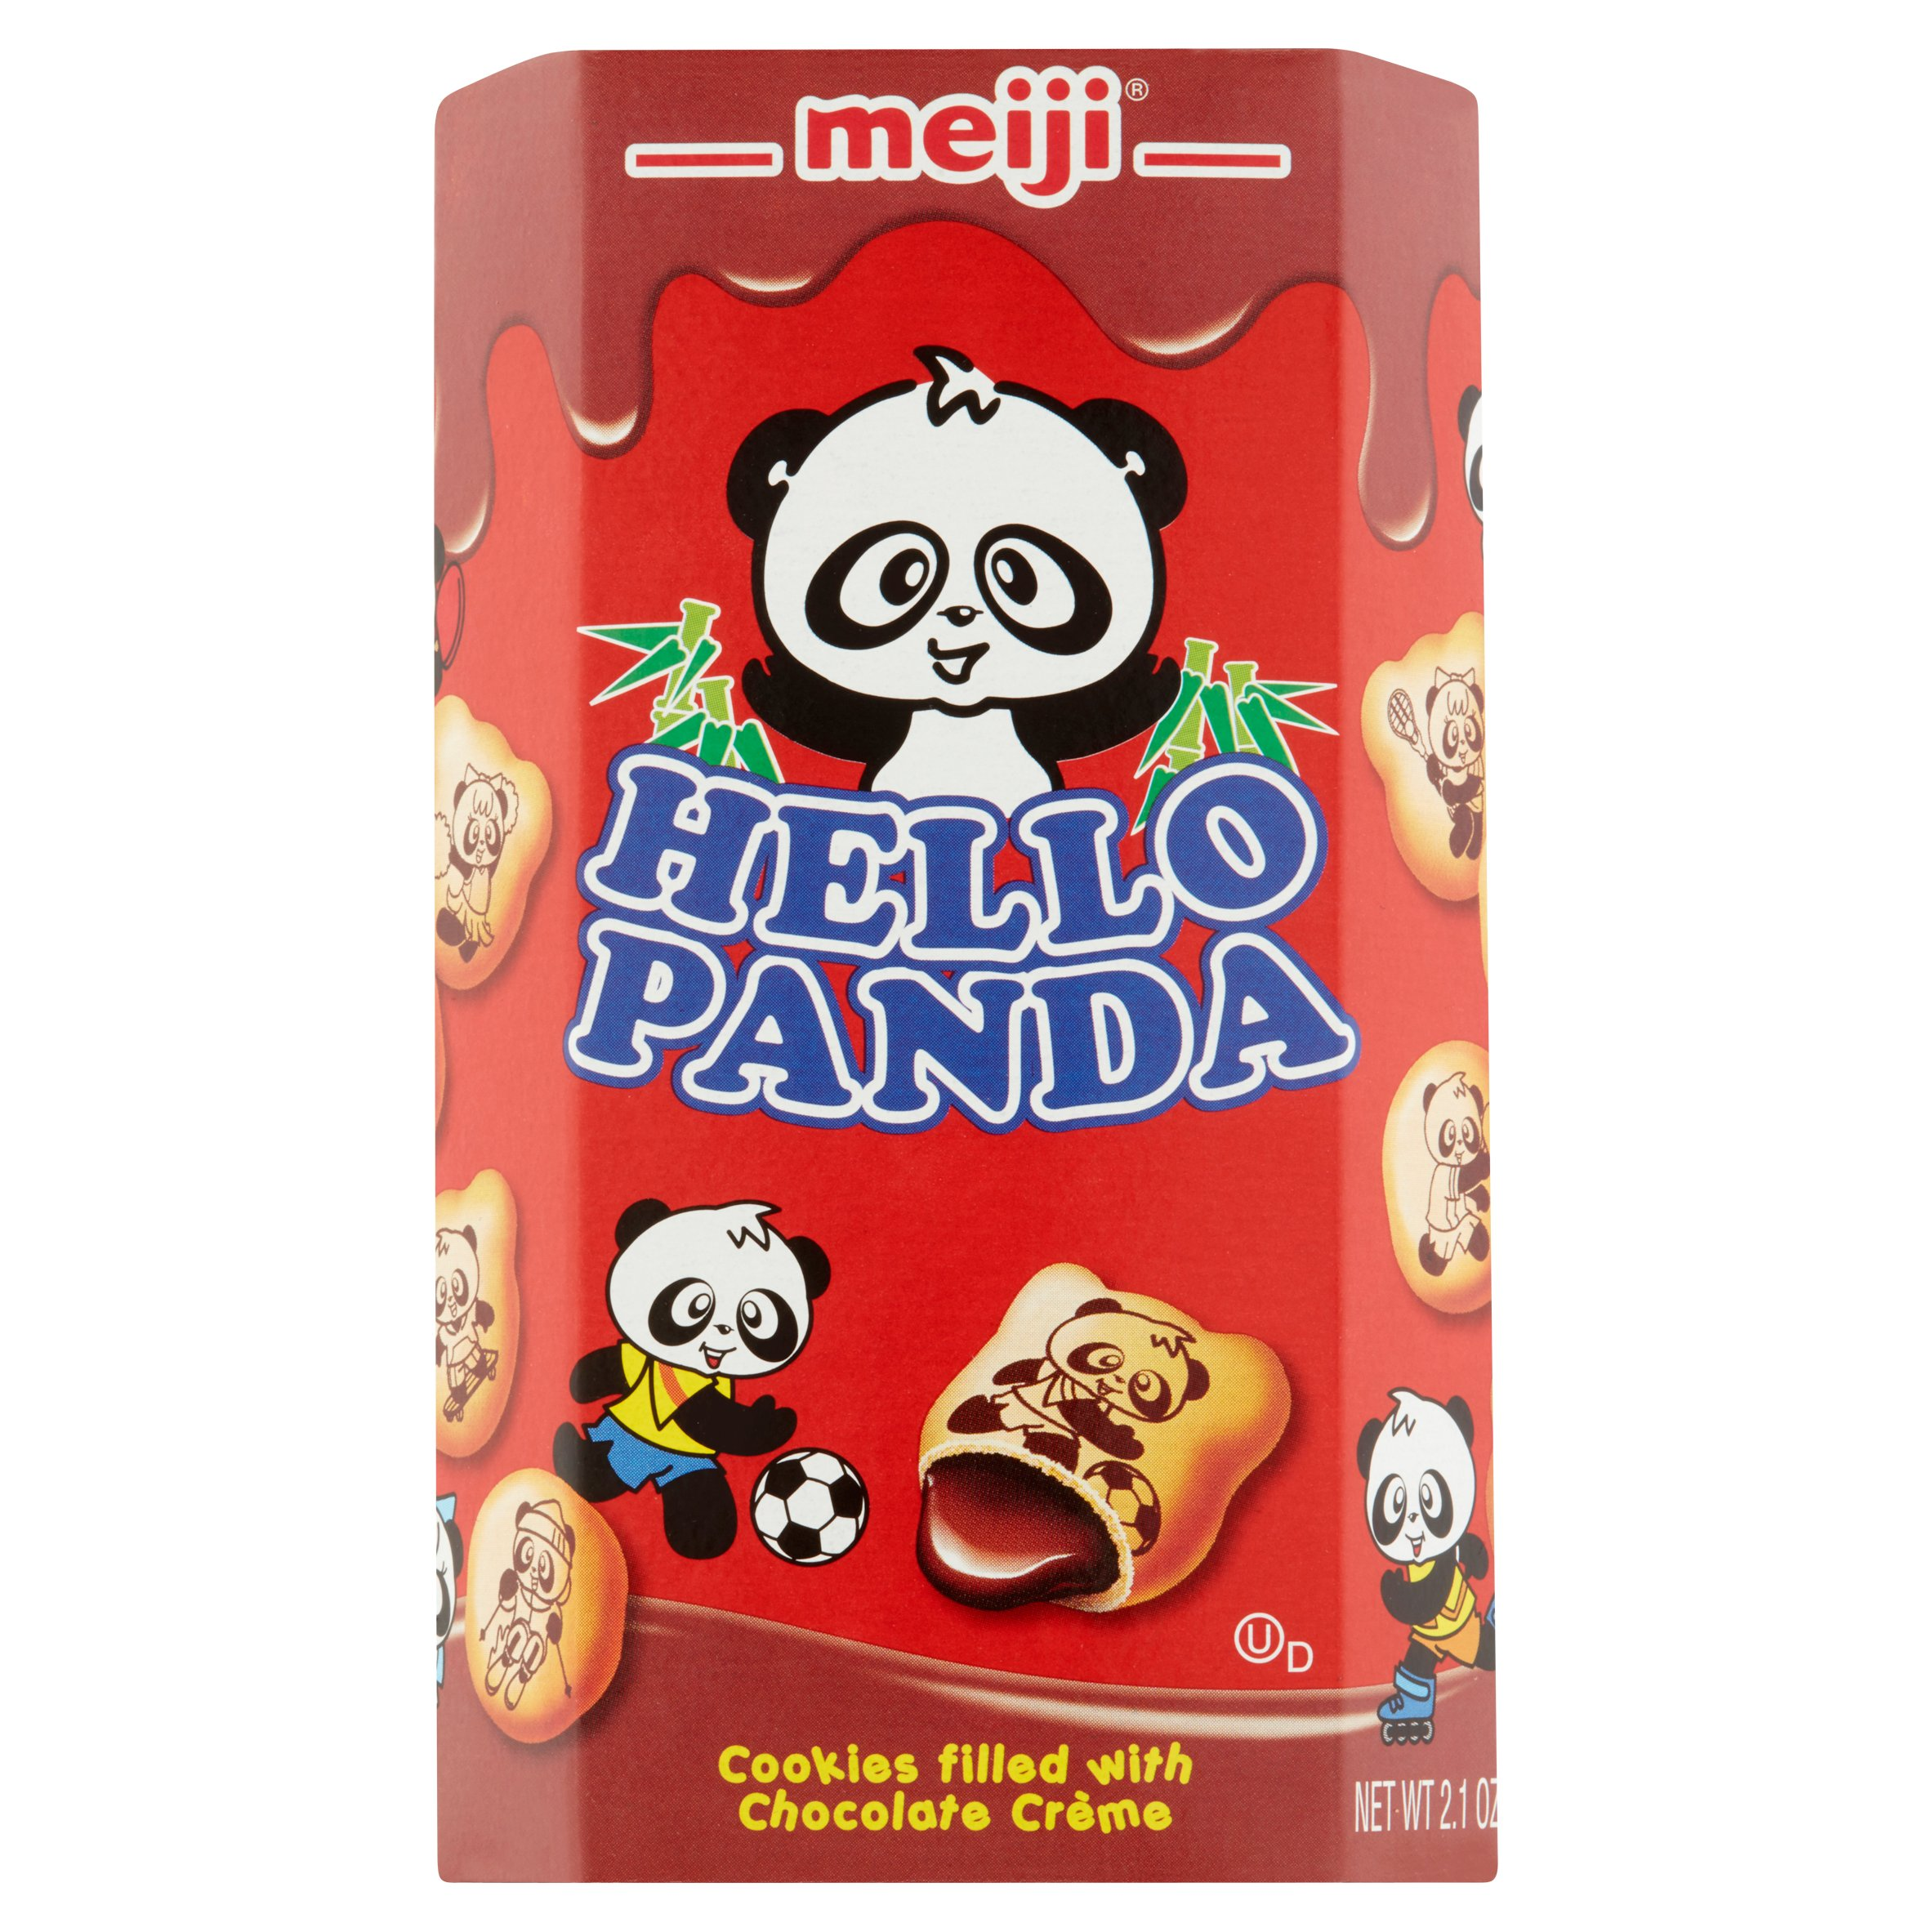 Meiji Hello Panda Cookies, Chocolate Crème, 2.1 Oz